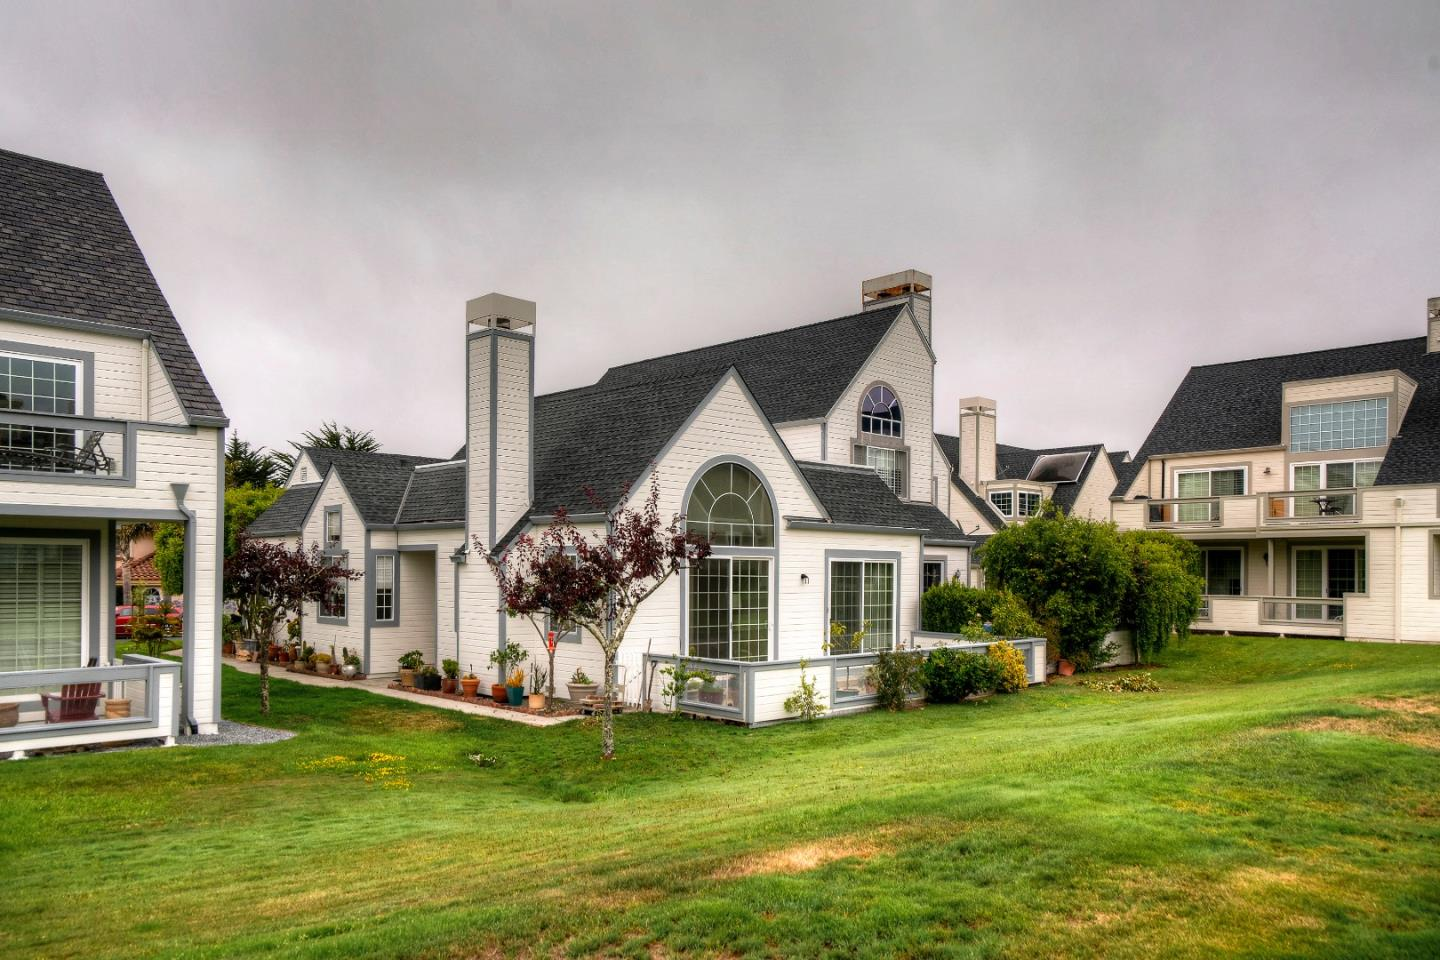 112 Turnberry Road Half Moon Bay, CA 94019 - MLS #: ML81716676